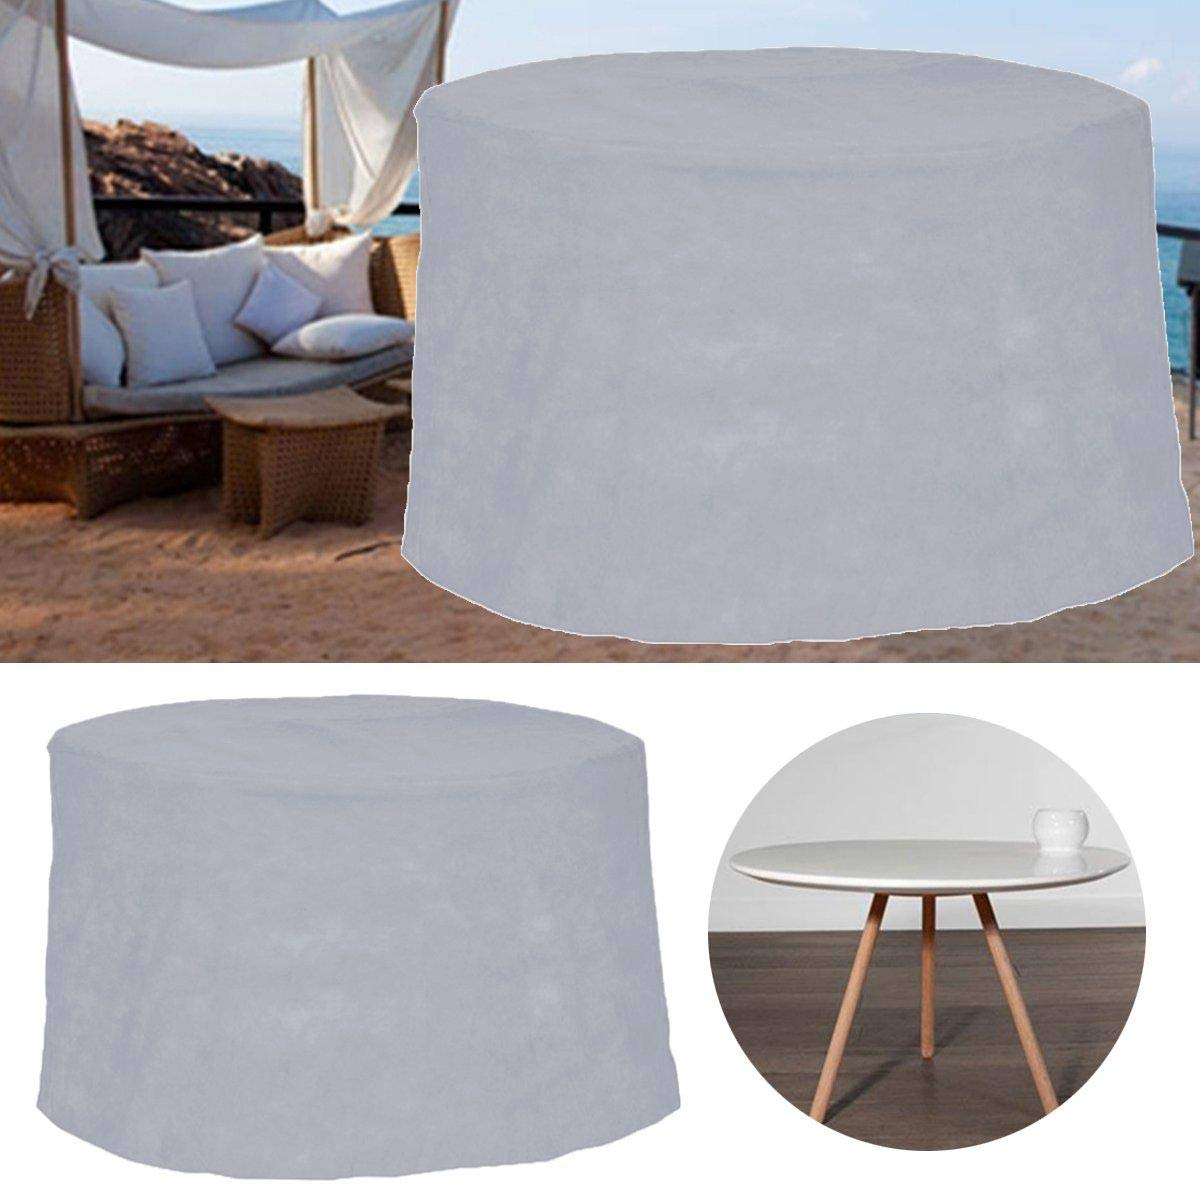 Anddoa Outdoor Garden Patio Furniture Cover Waterproof Dustproof Desk Table Chair Cover